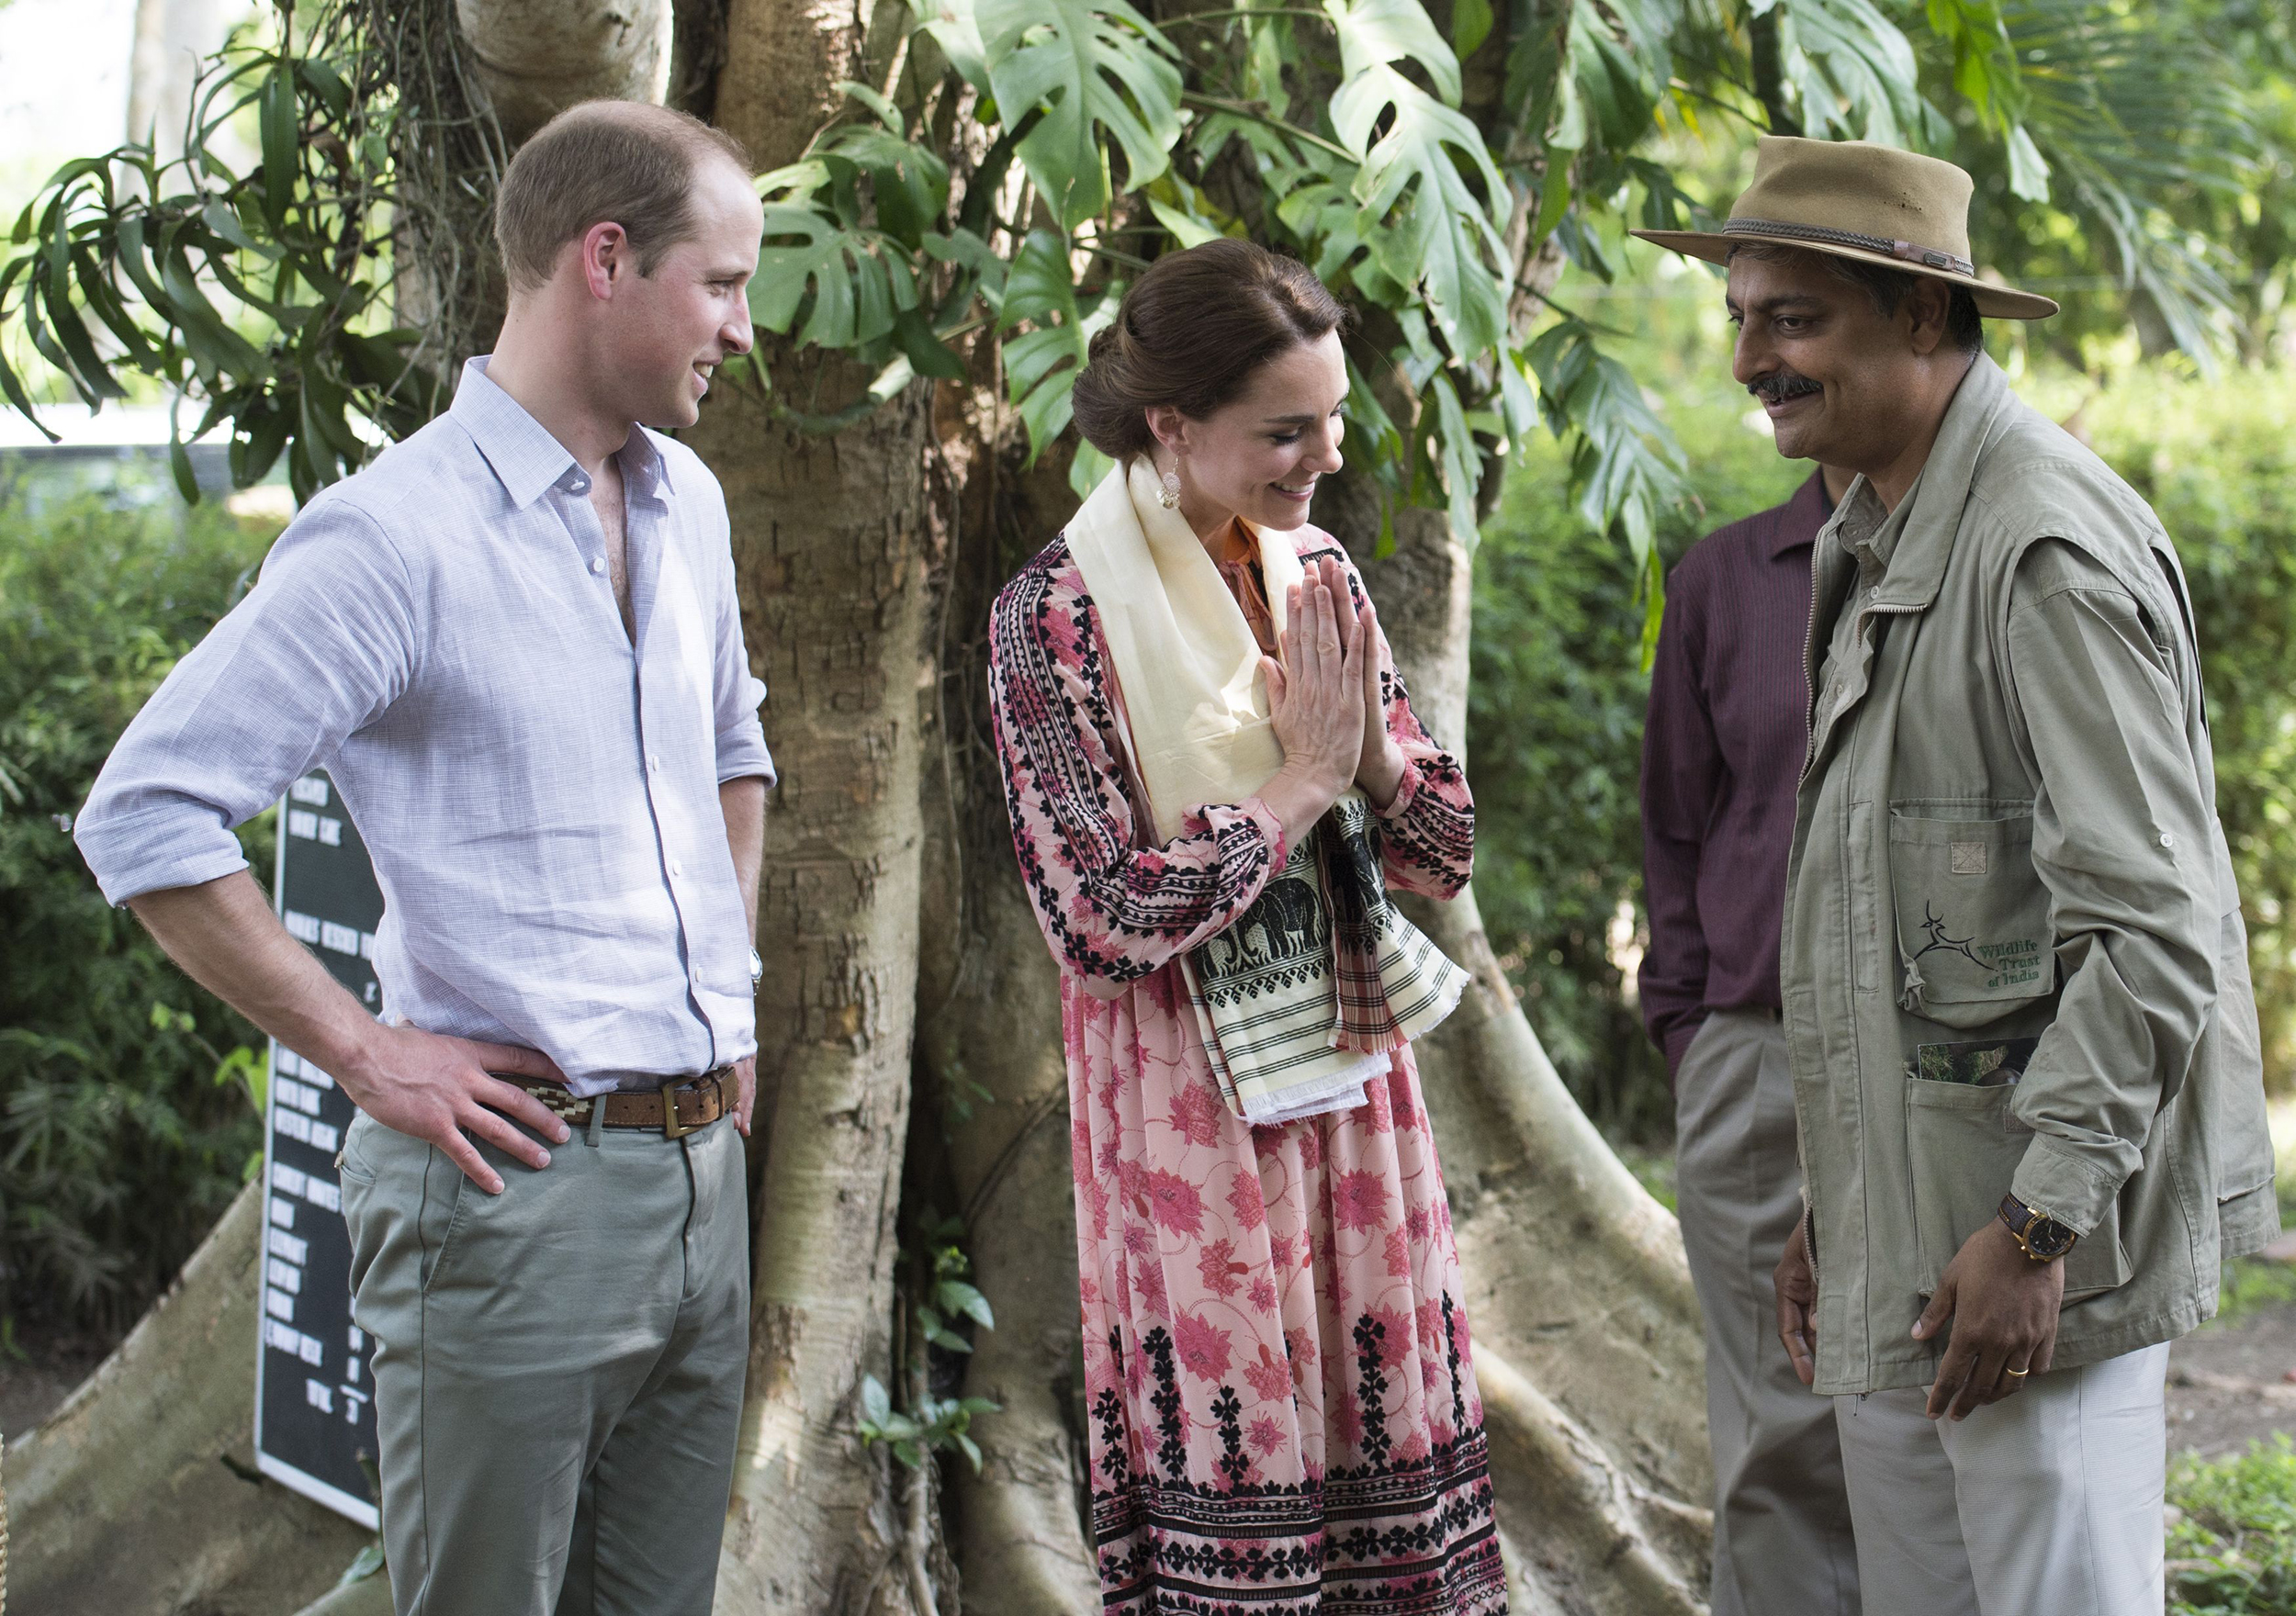 The Duke and Duchess of Cambridge during a visit to the Centre for Wildlife Rehabilitation and Conservation in Kaziranga, India on April 13, 2016.